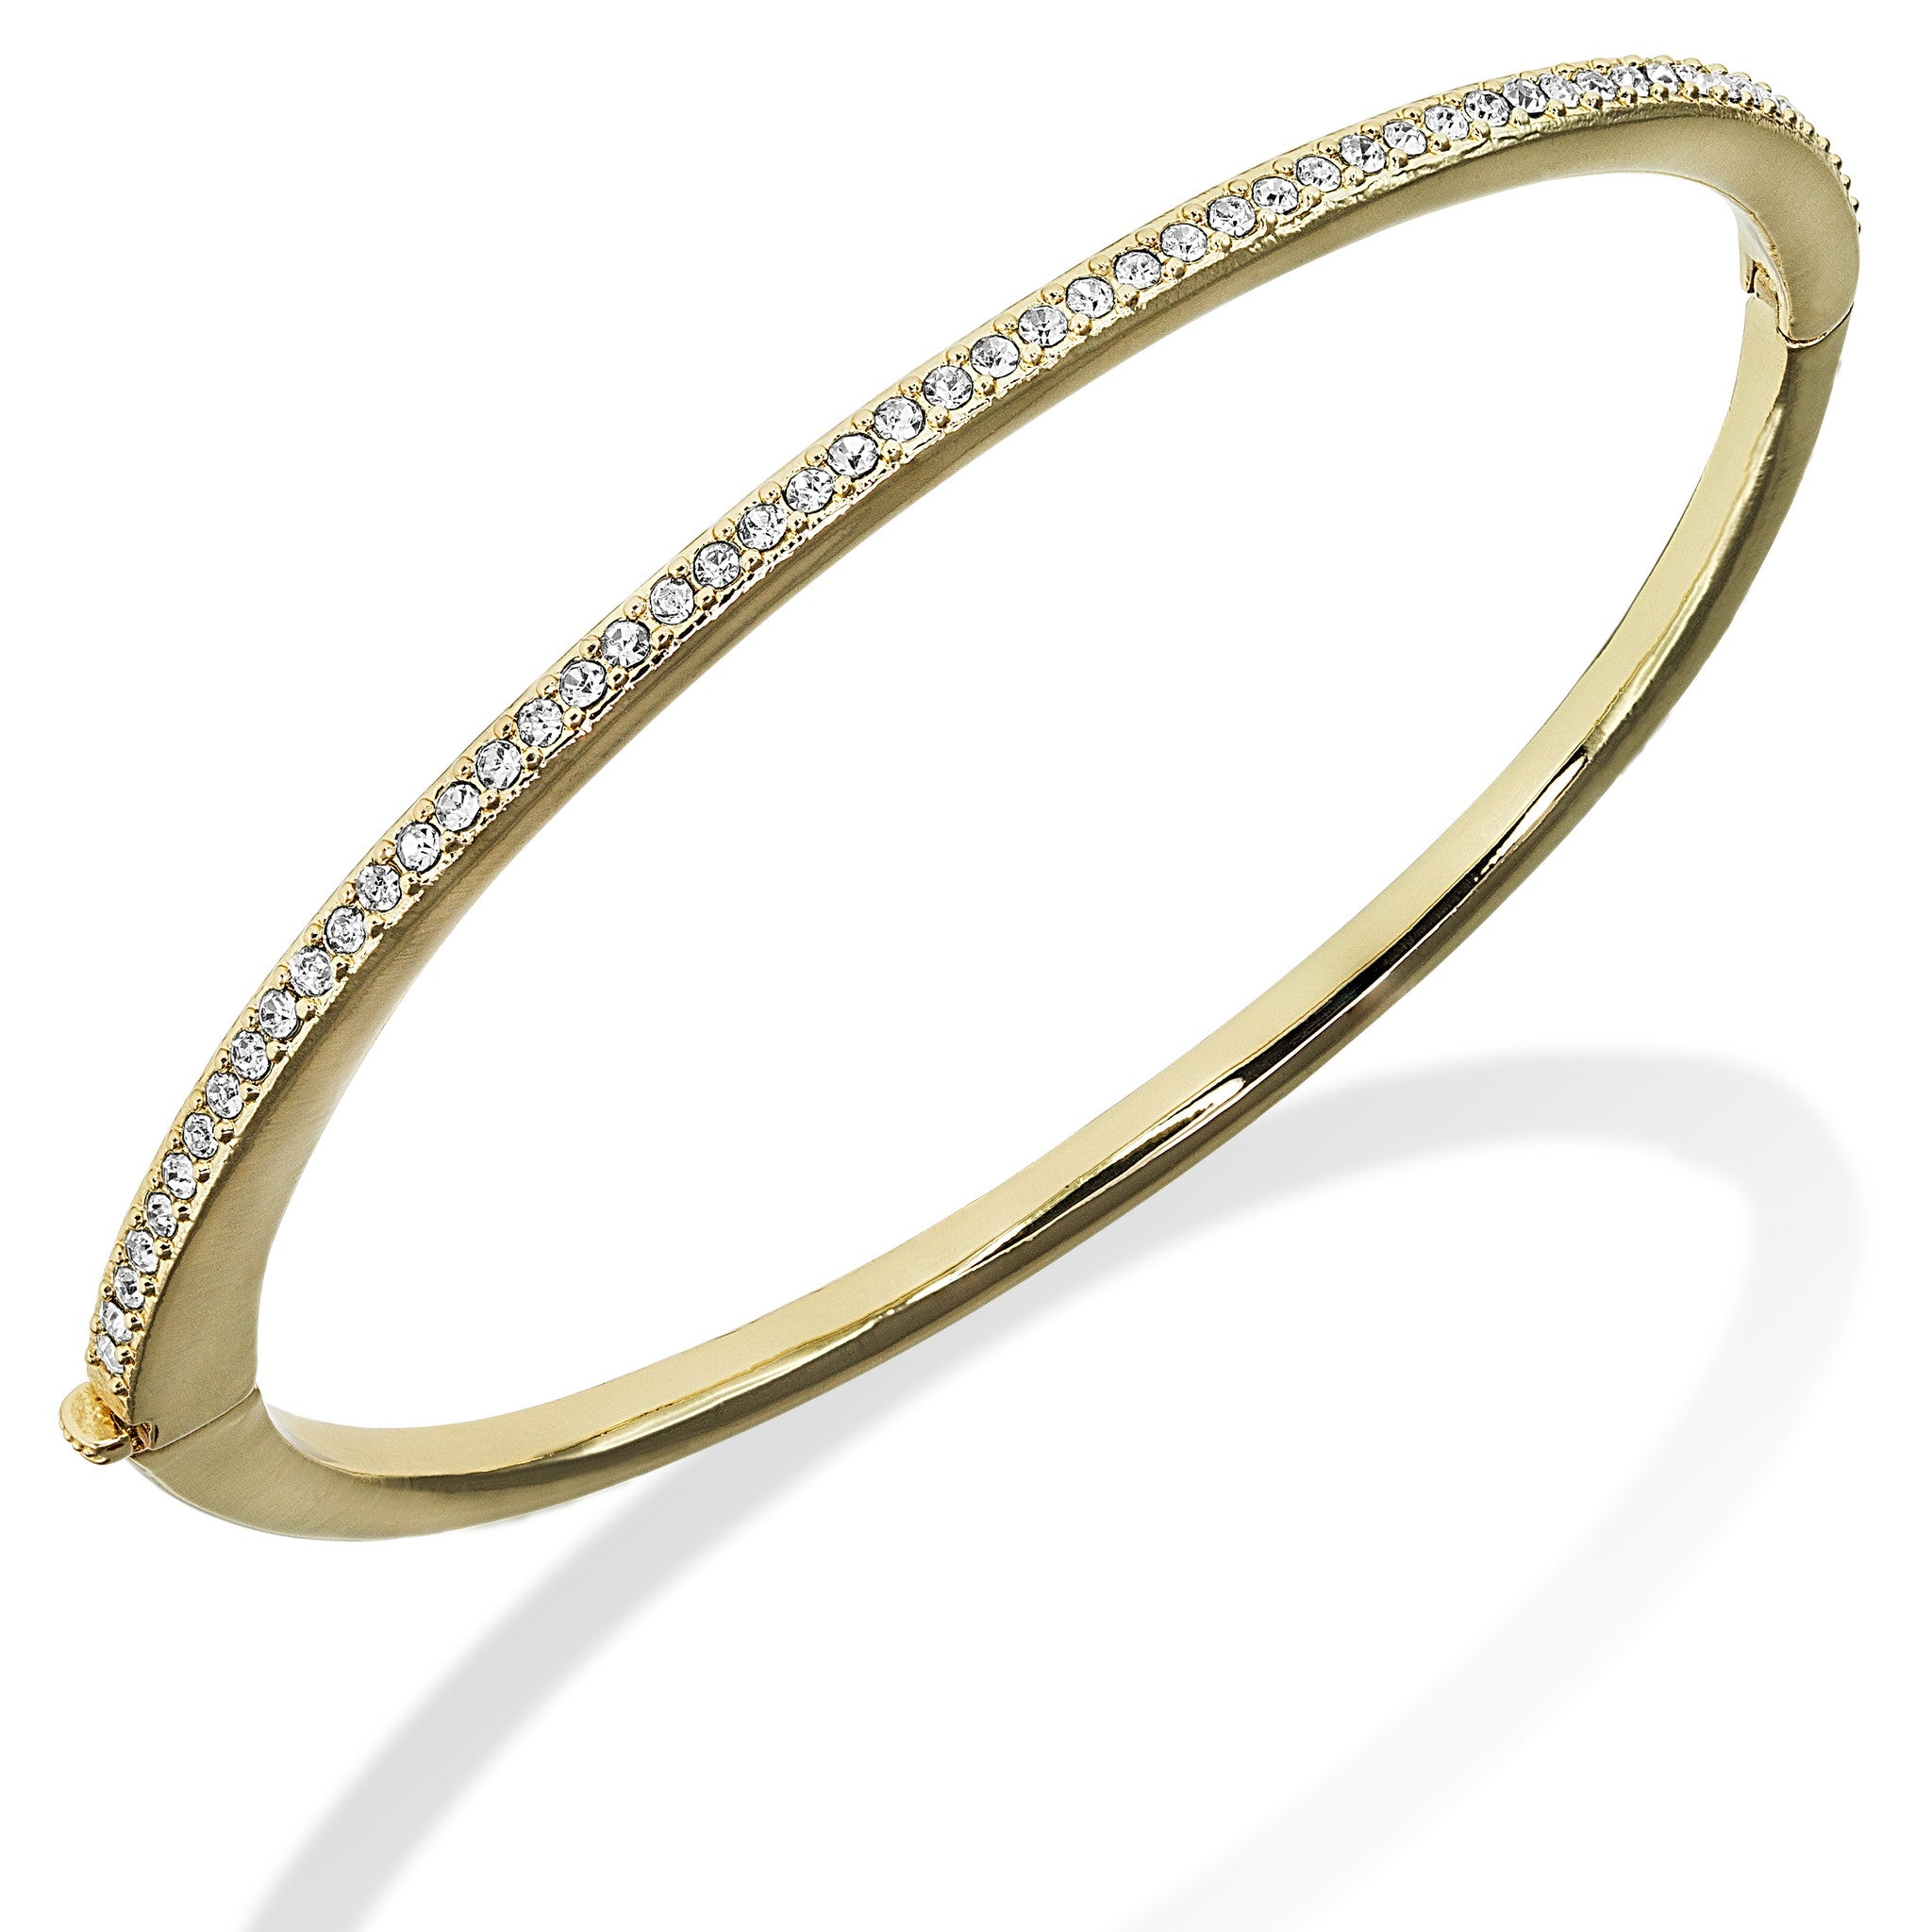 stone bangles hinged zi bracelet kate set in new p york plated bangle spade gold clear